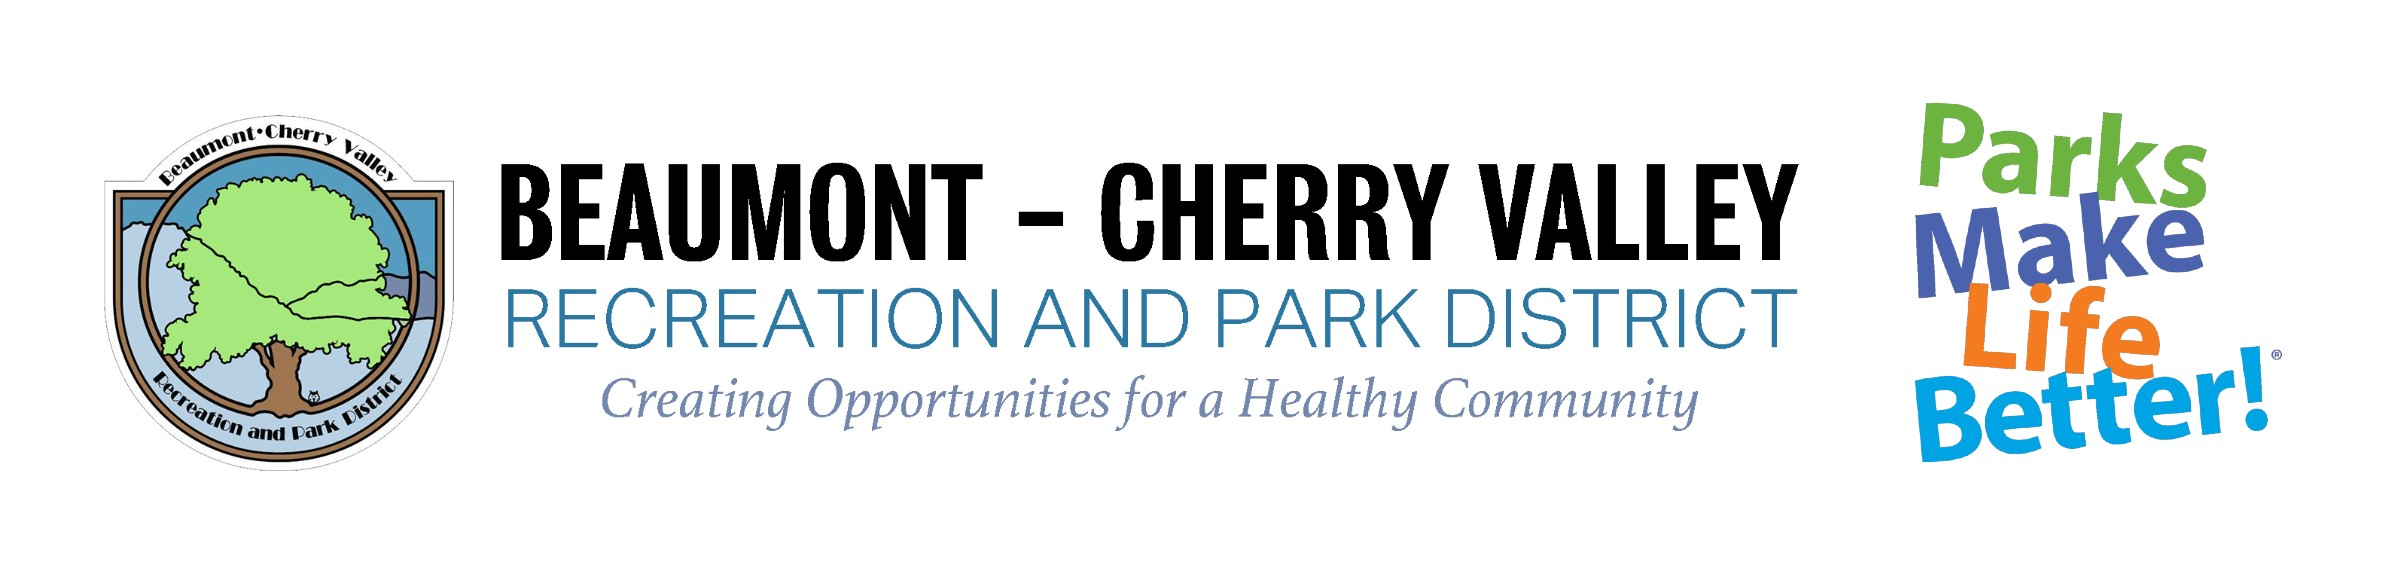 Beaumont-Cherry Valley Recreation and Park District